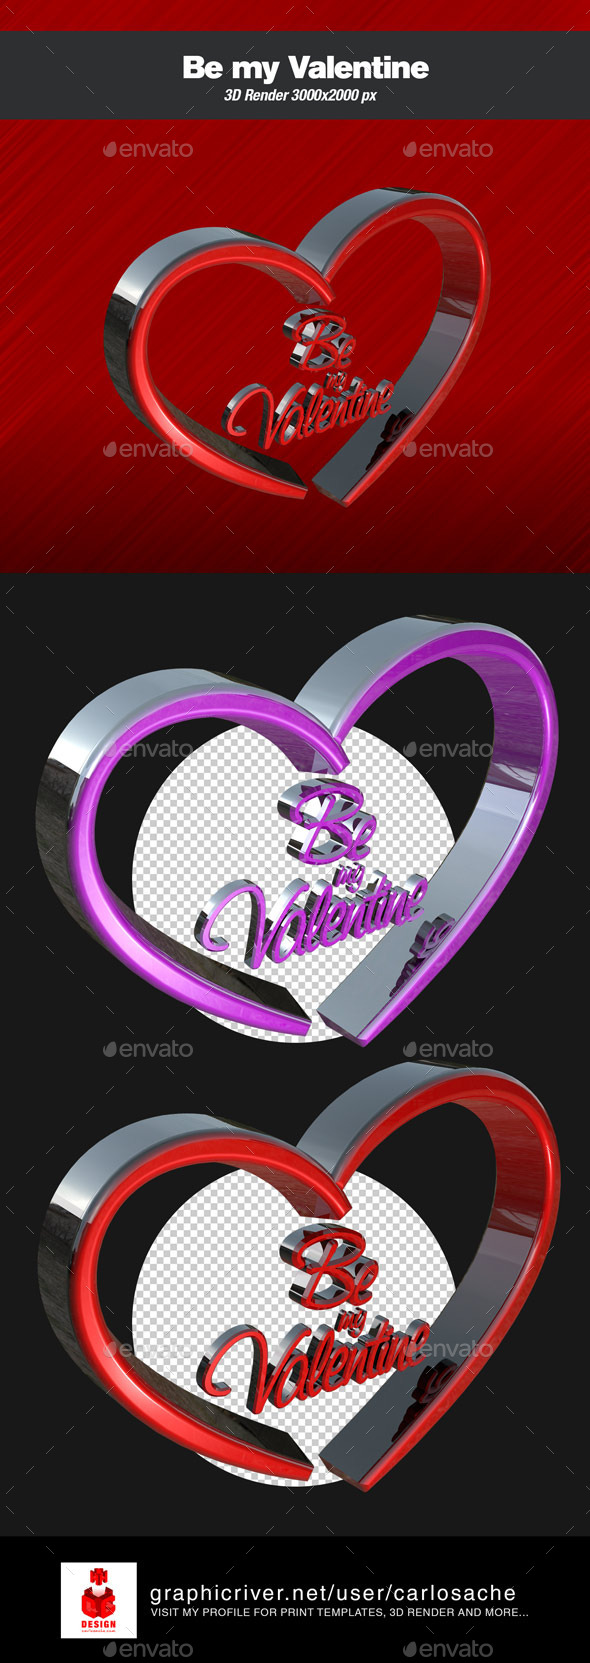 Be my Valentine 3D Render Text